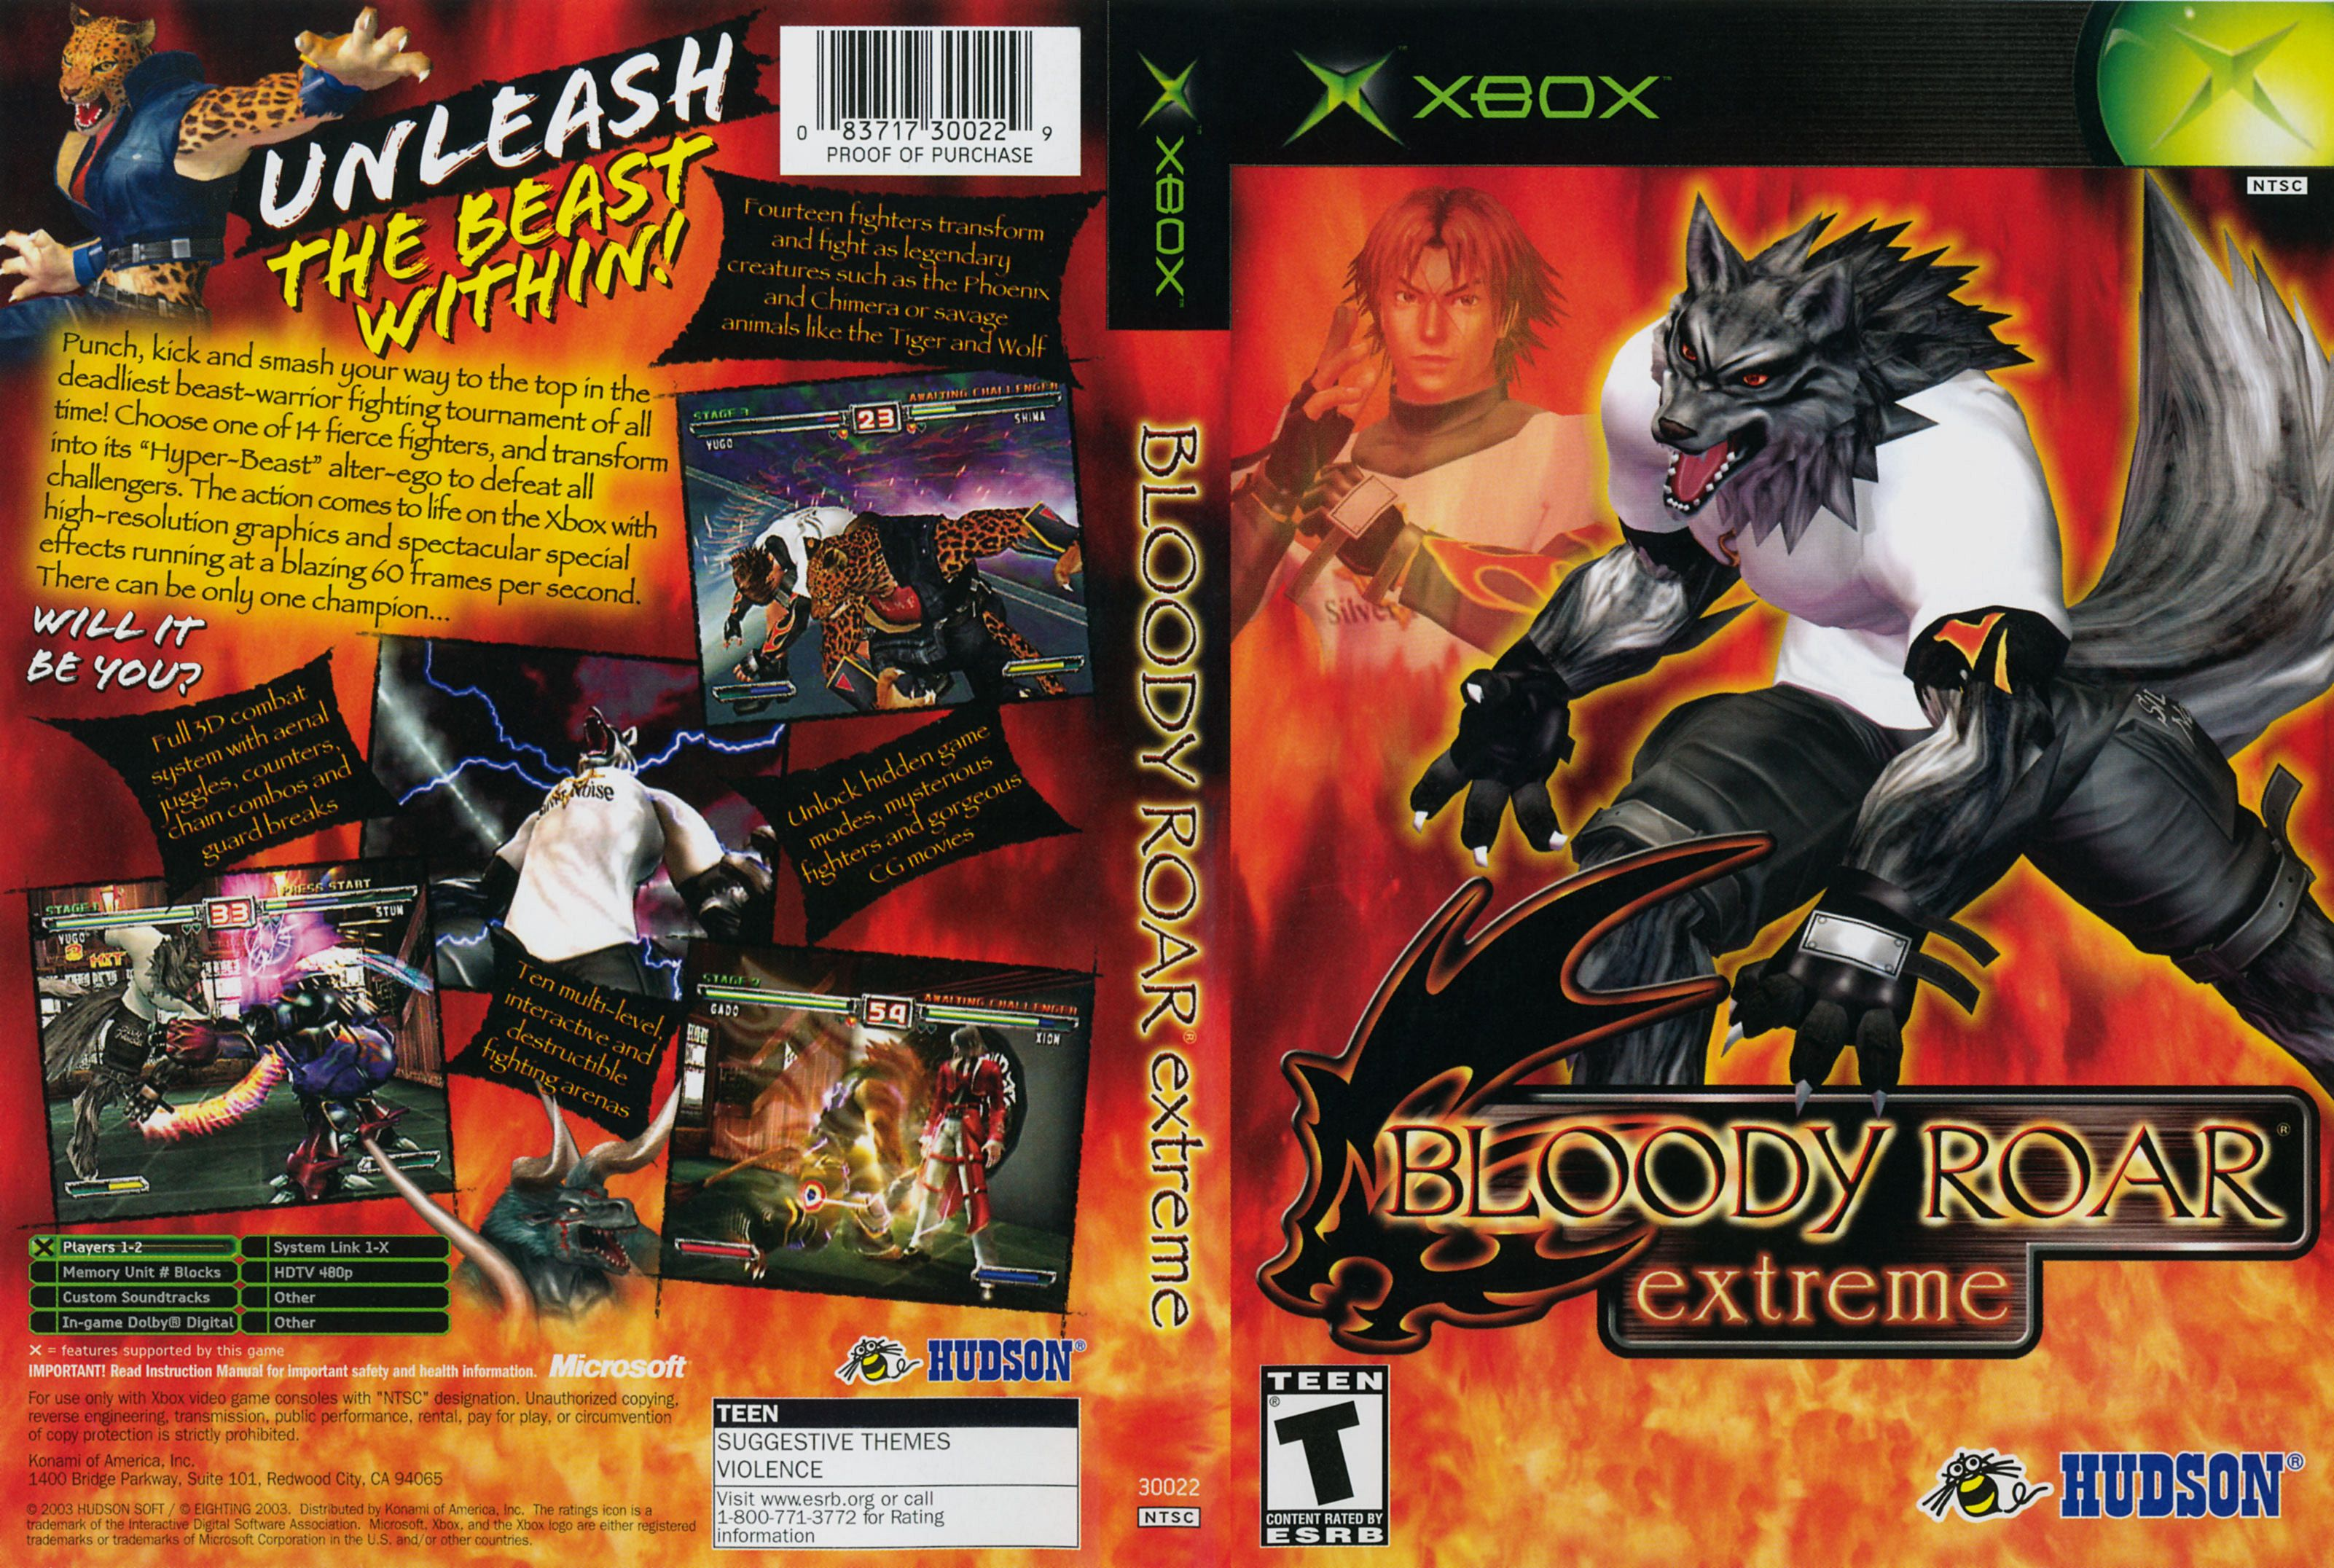 Bloody roar extreme porno nsfw realistic females